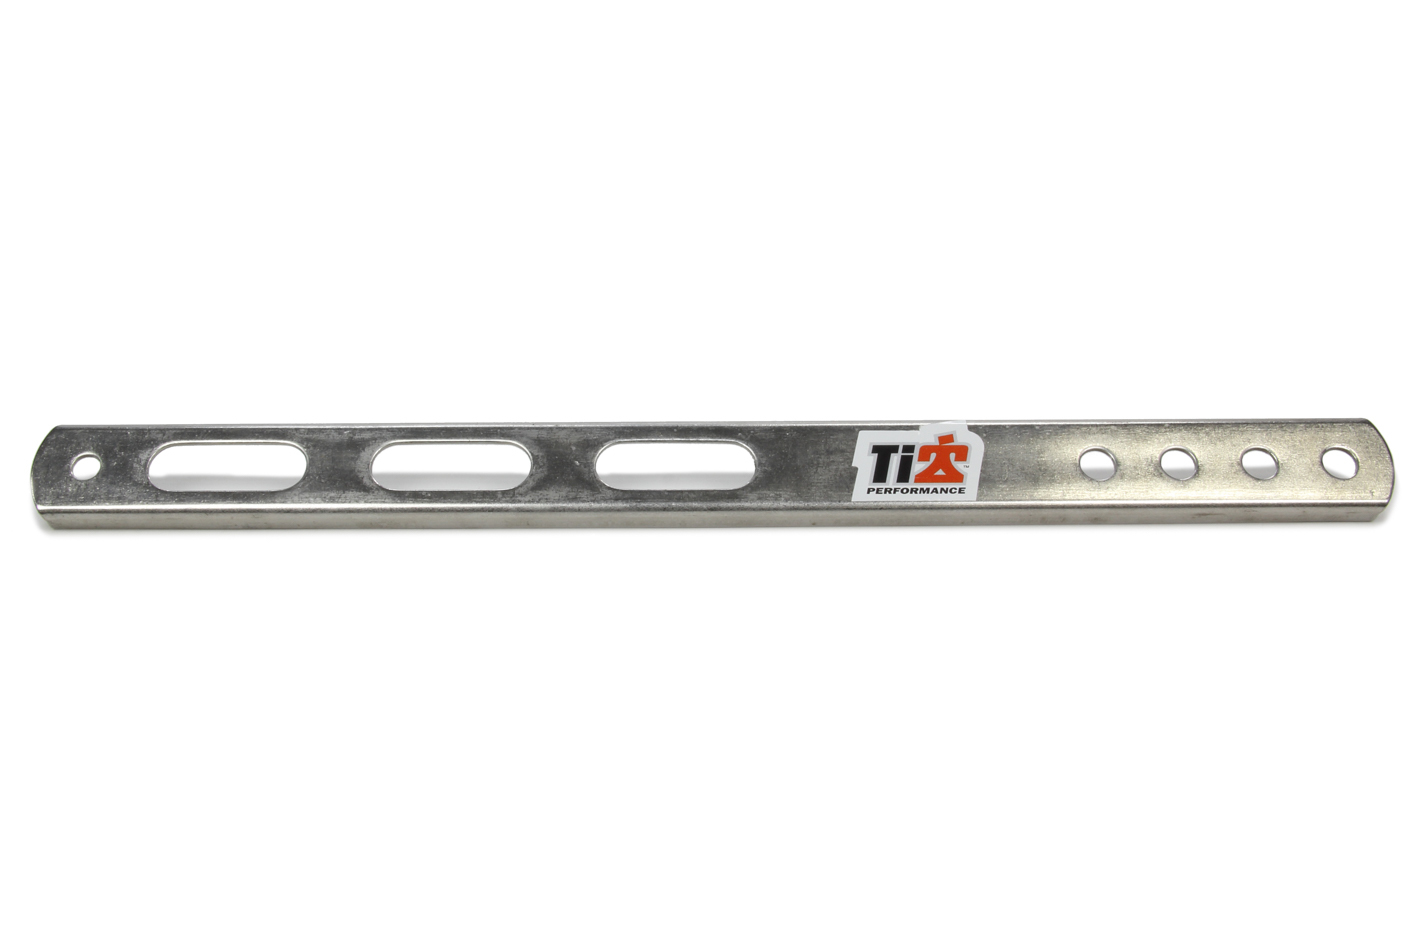 Ti22 PERFORMANCE 600 Stainless Nose Wing Straps 11.5in Long P/N -TIP3784